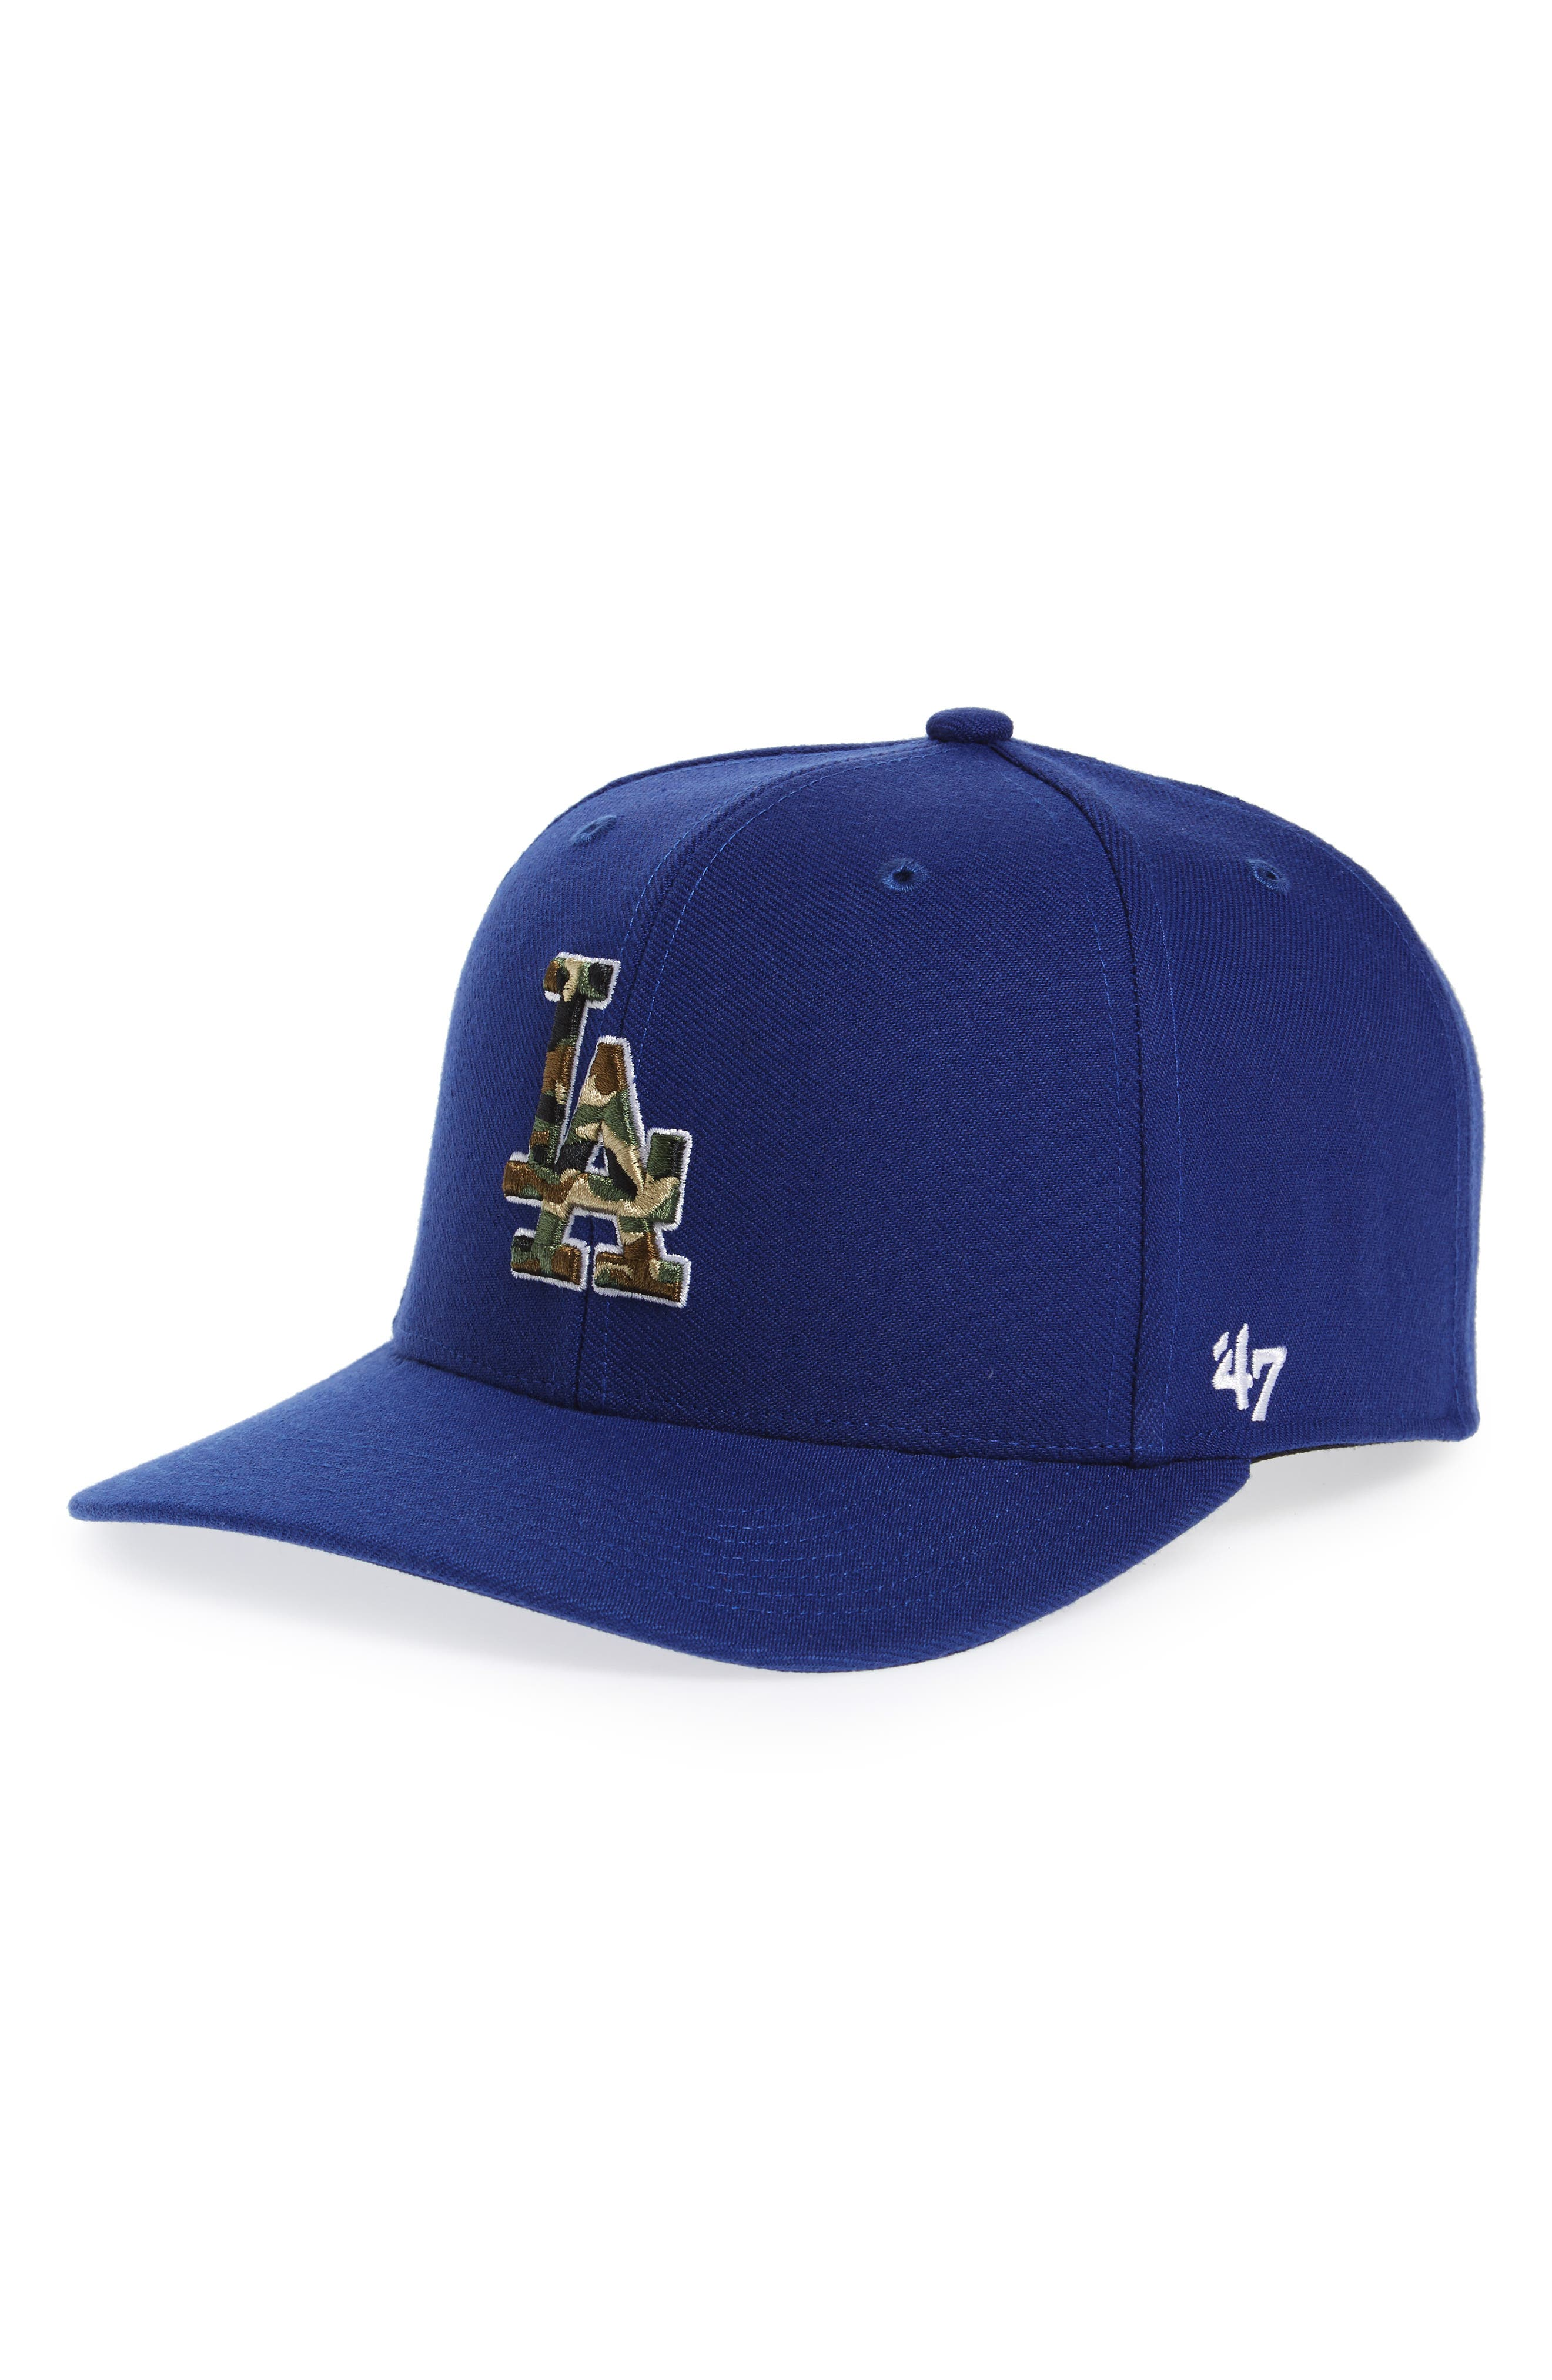 Los Angeles Dodgers - Camouflage Baseball Cap,                             Main thumbnail 1, color,